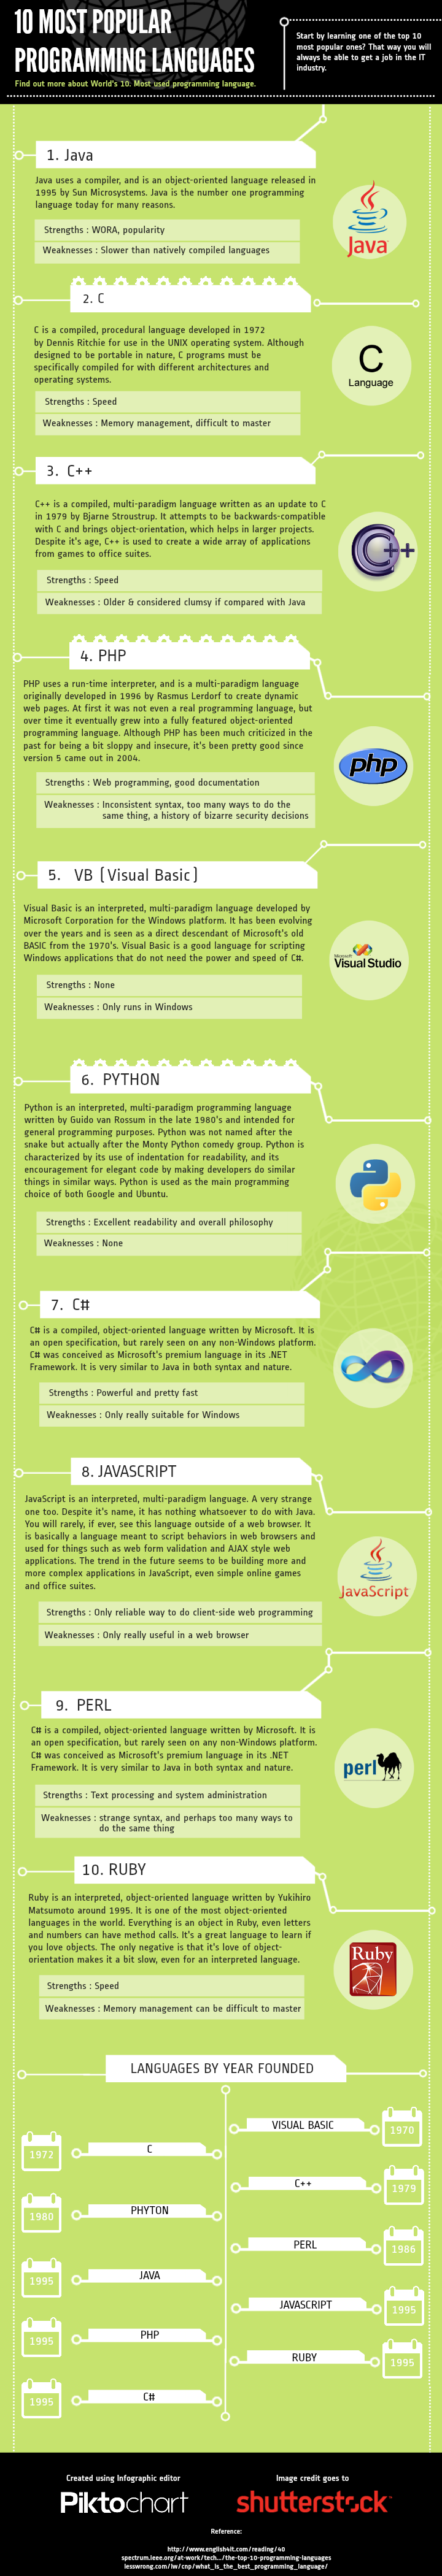 """Montana Social Media and Marketing speaks many languages, here's the """"10 Most Popular Programming Languages."""""""